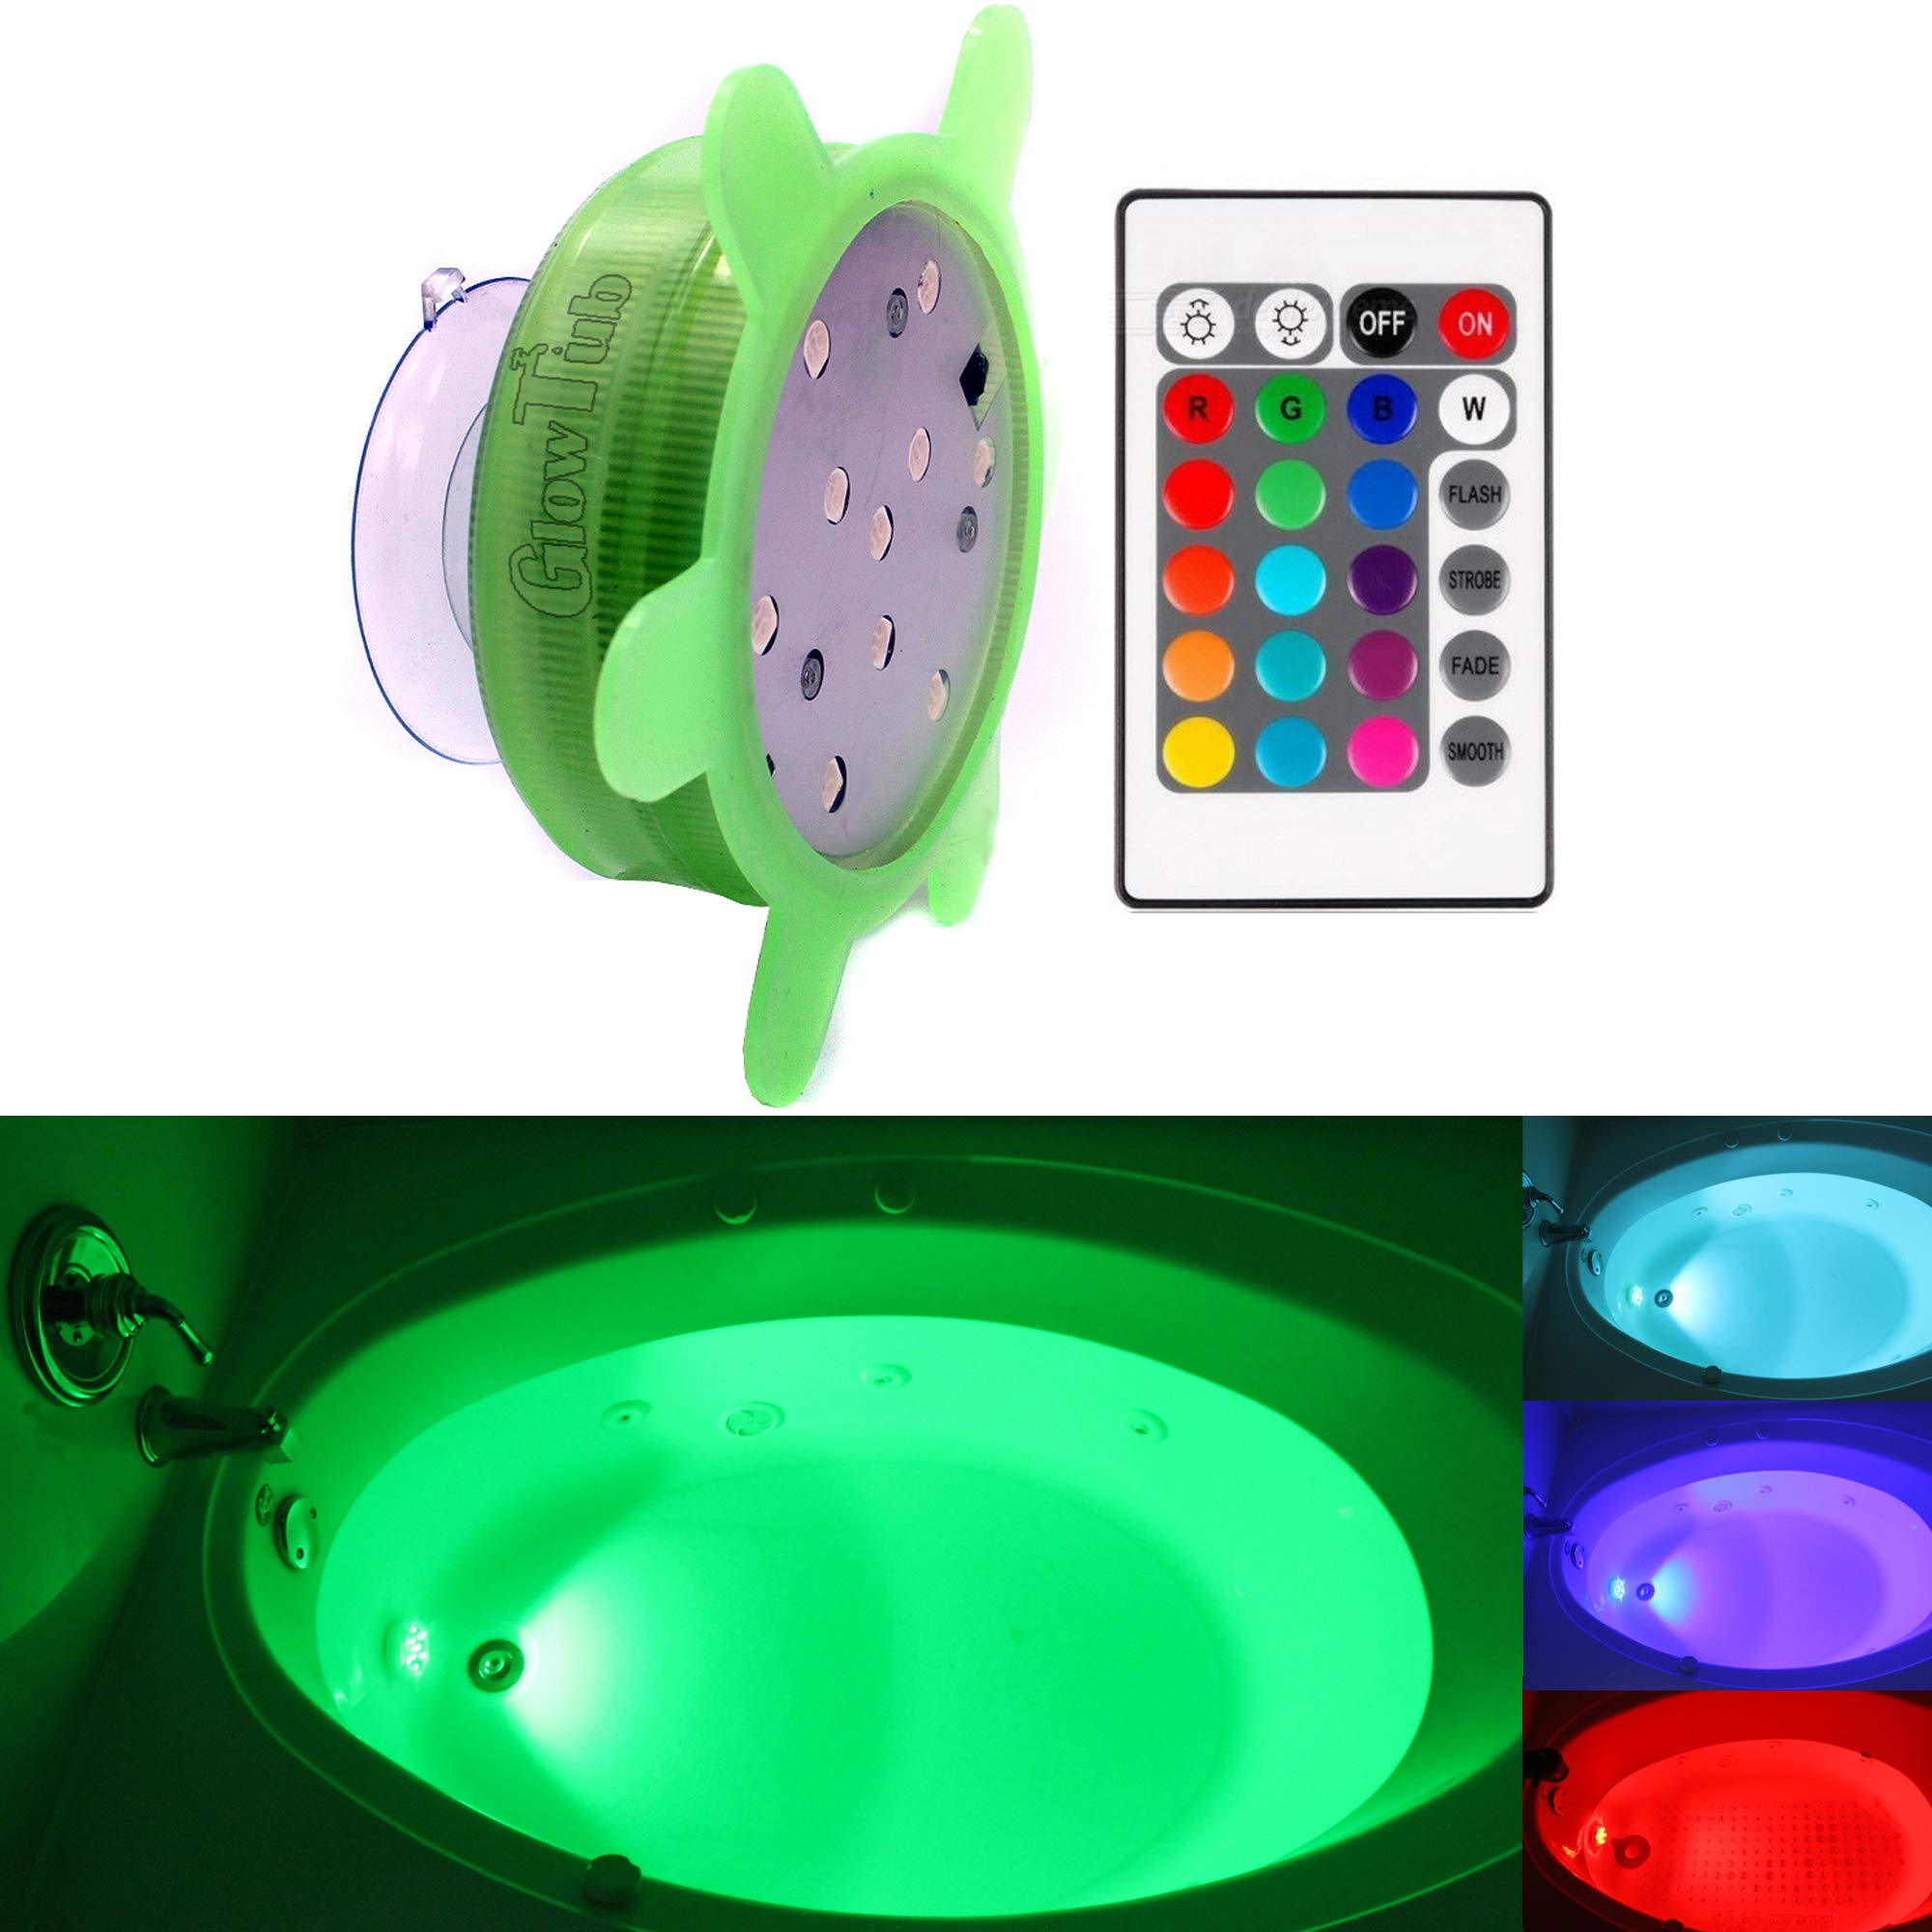 Superieur GlowTub Underwater Remote Controlled LED Color Changing Light For Bathtub  Or Spa   Battery Operated